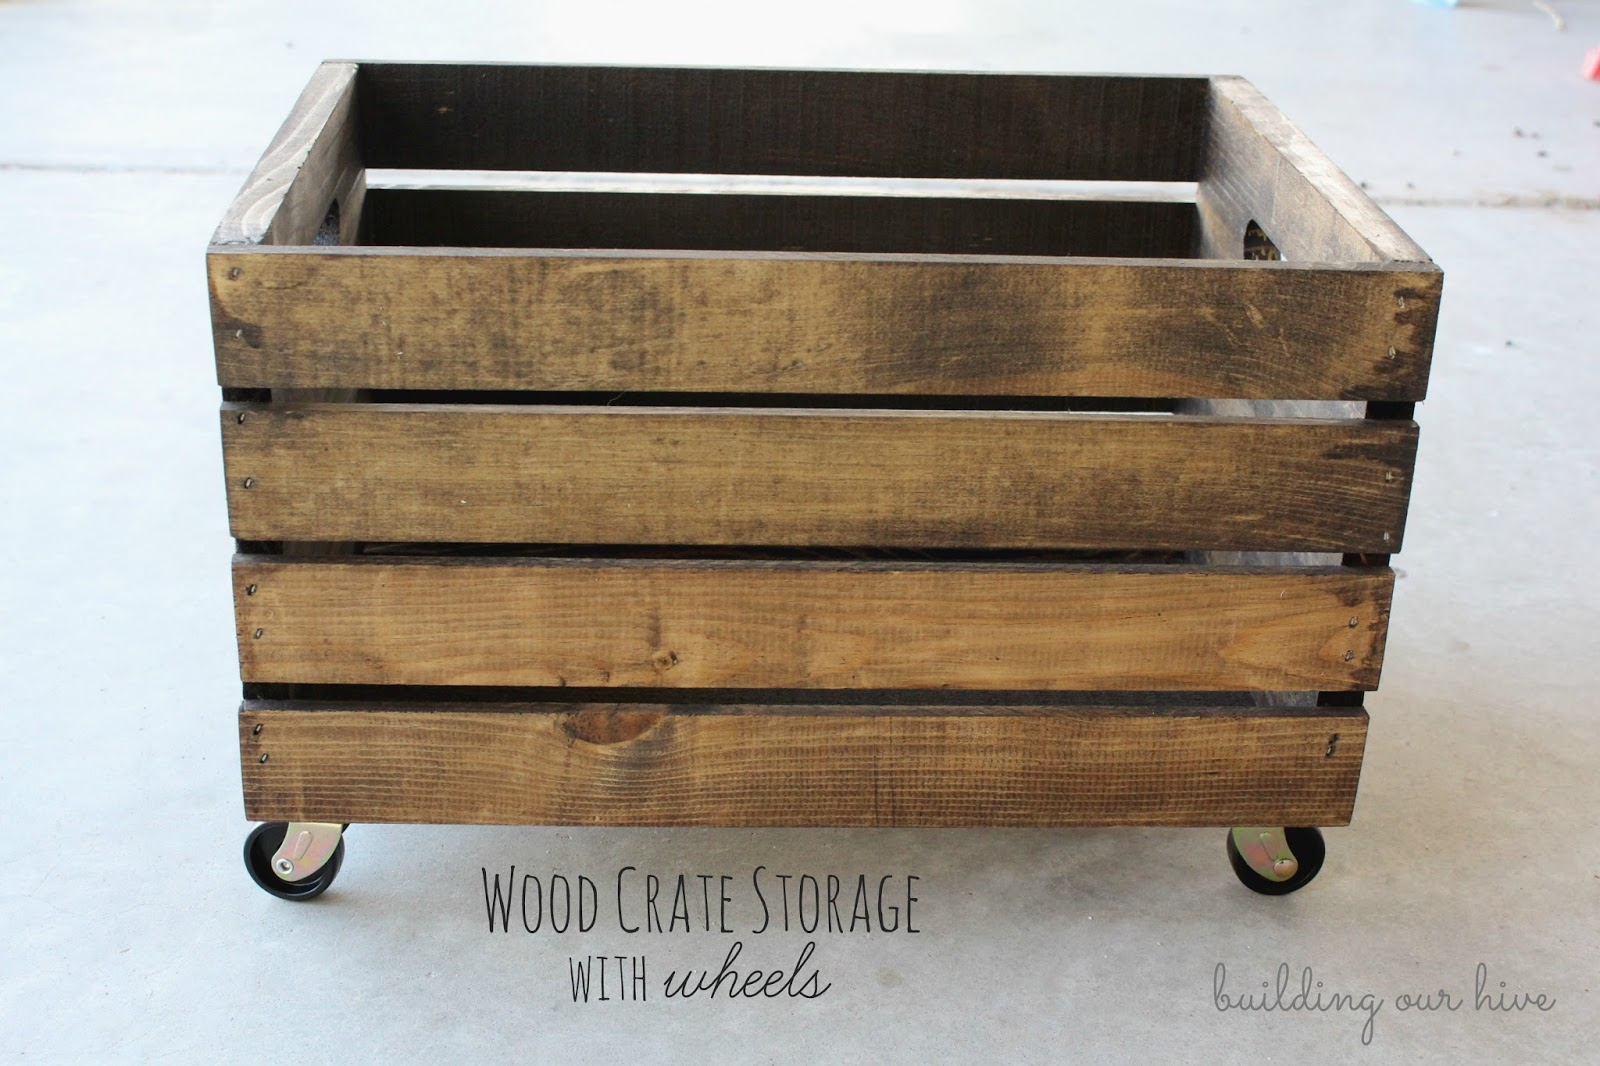 Building Our Hive: Wood Crate Storage with Wheels